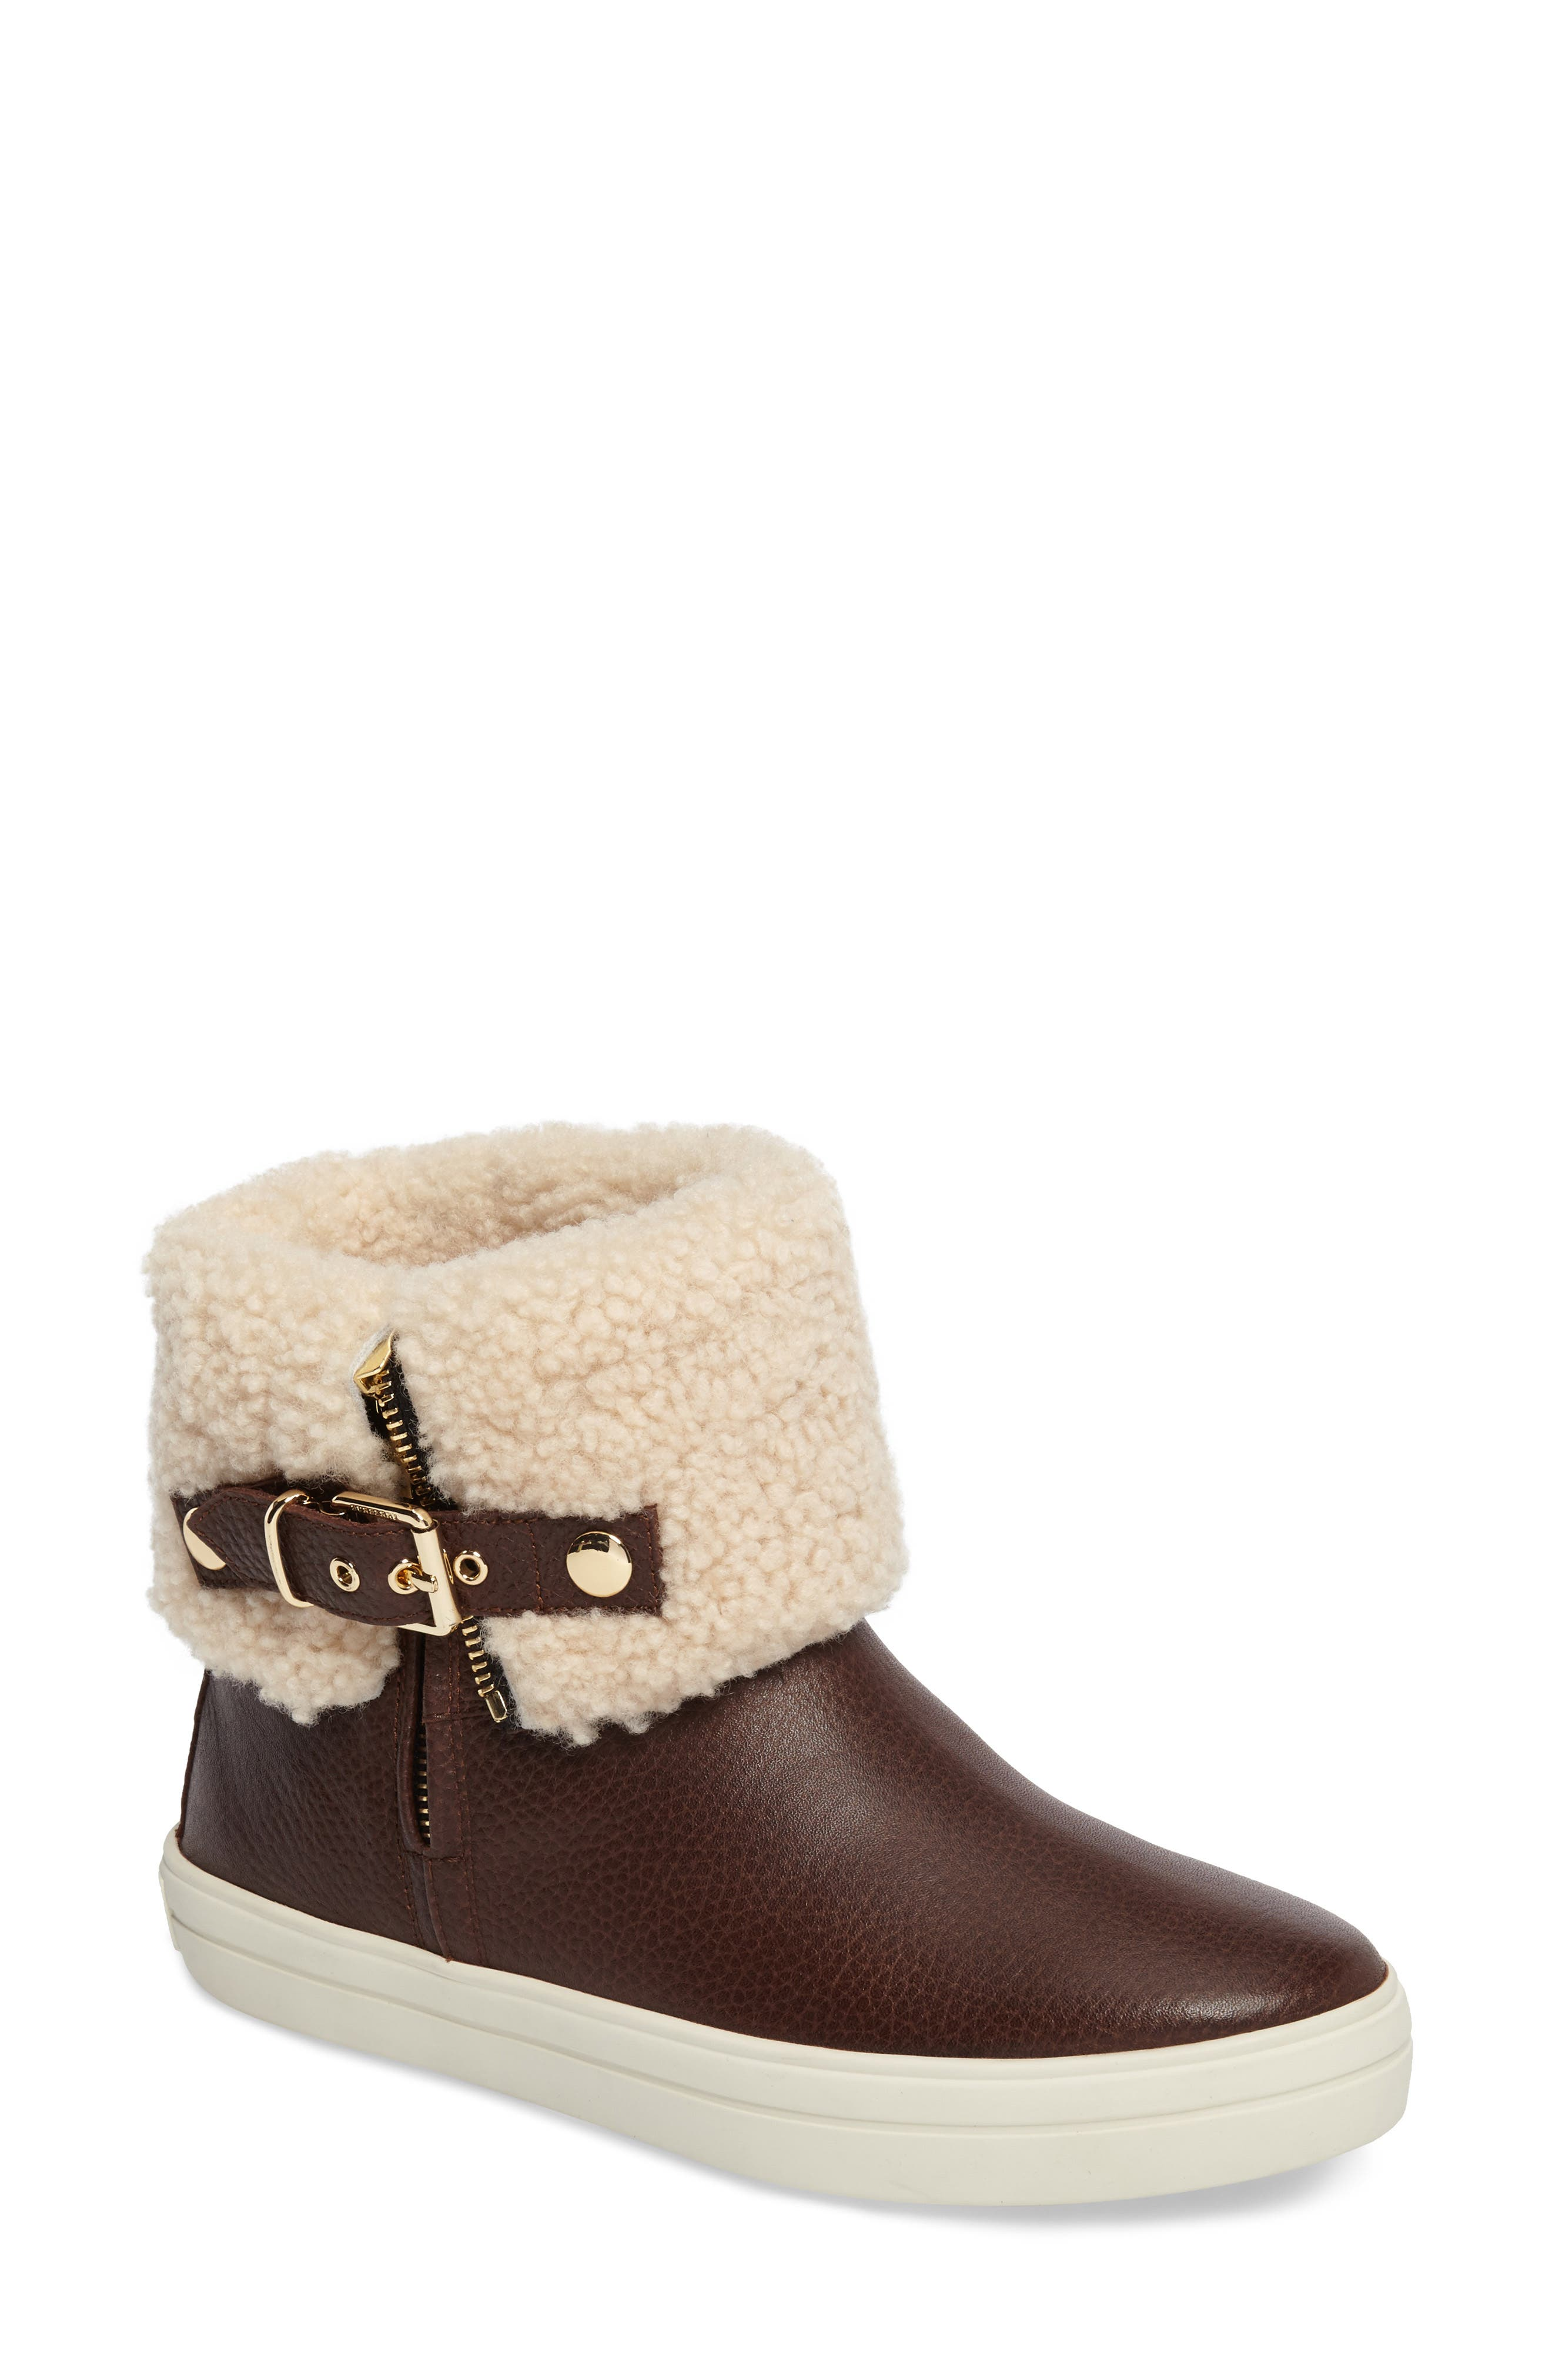 burberry boot liners